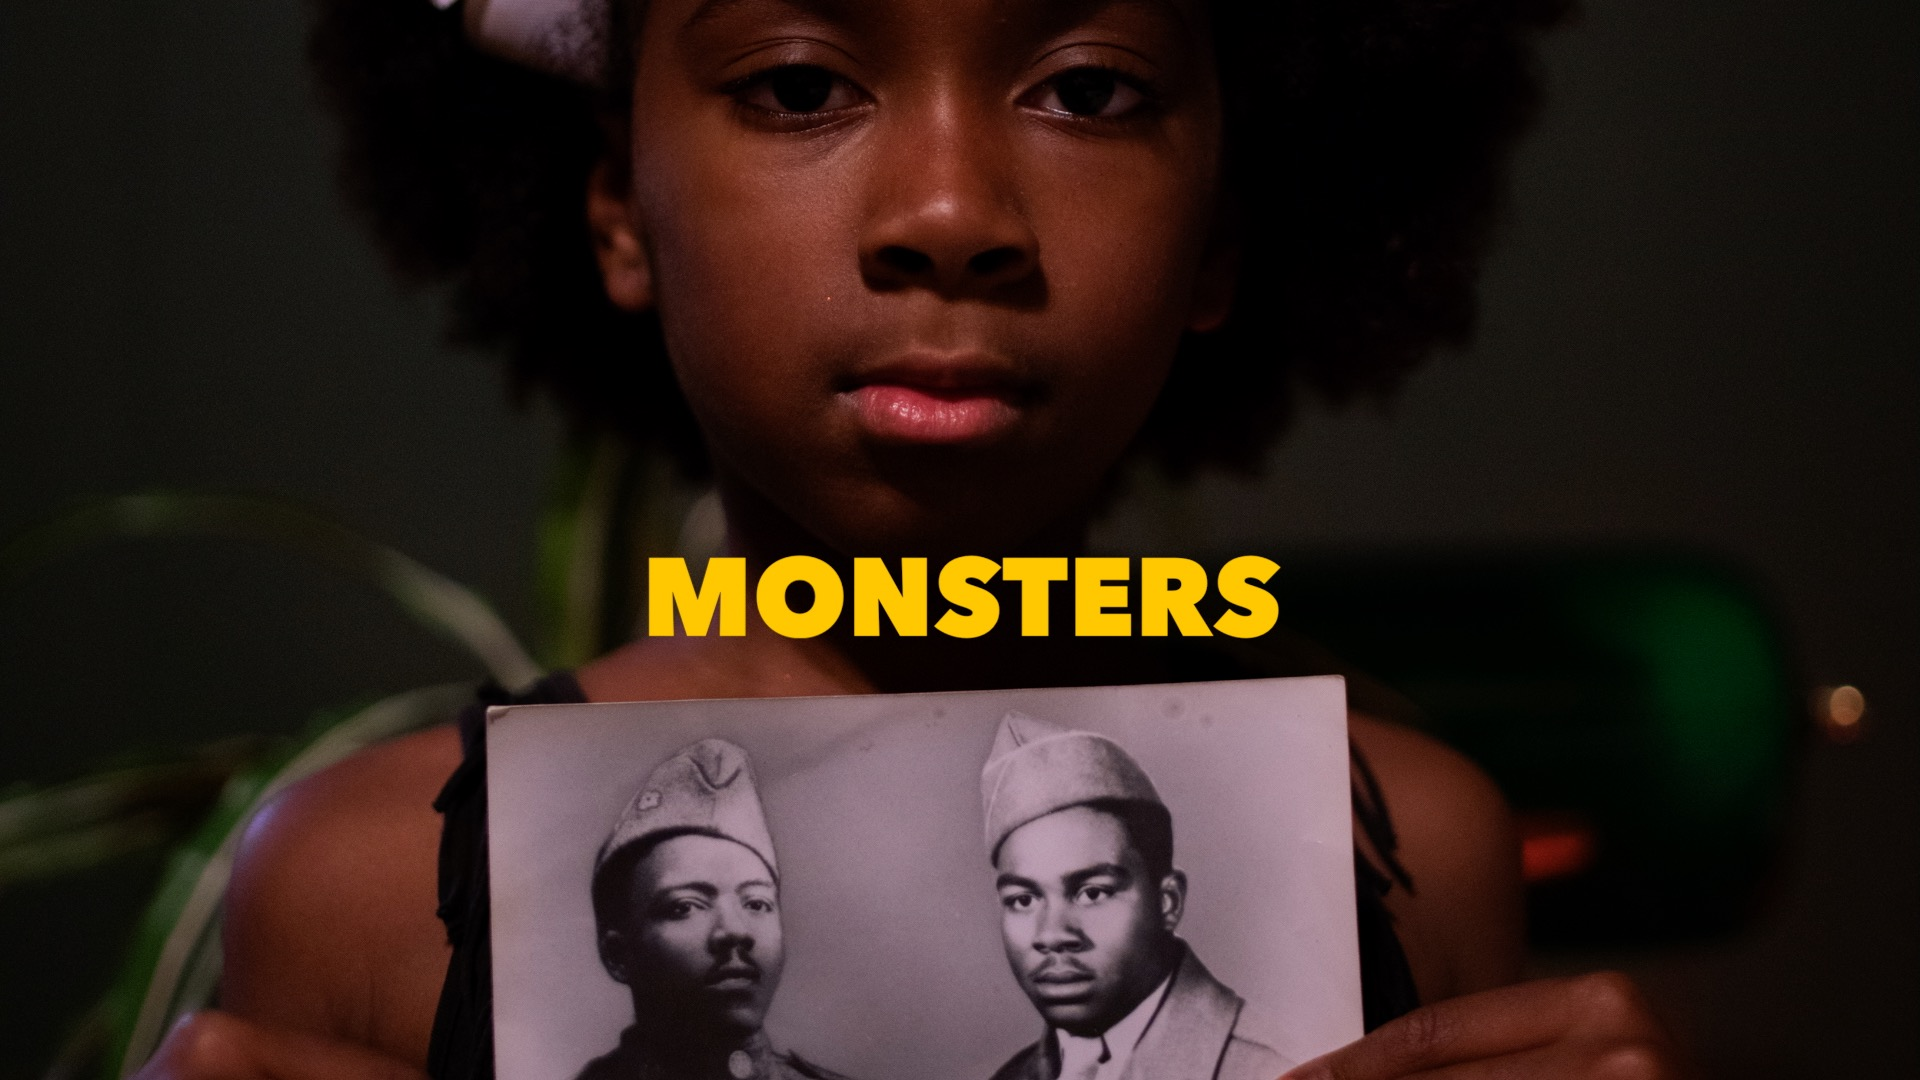 Mahal Gilbert, screenshot of Monsters Music Video, Directed by Omar De Leon, music created by Real J. Wallace and Daniel Koestner aka Real j & DNYKAY